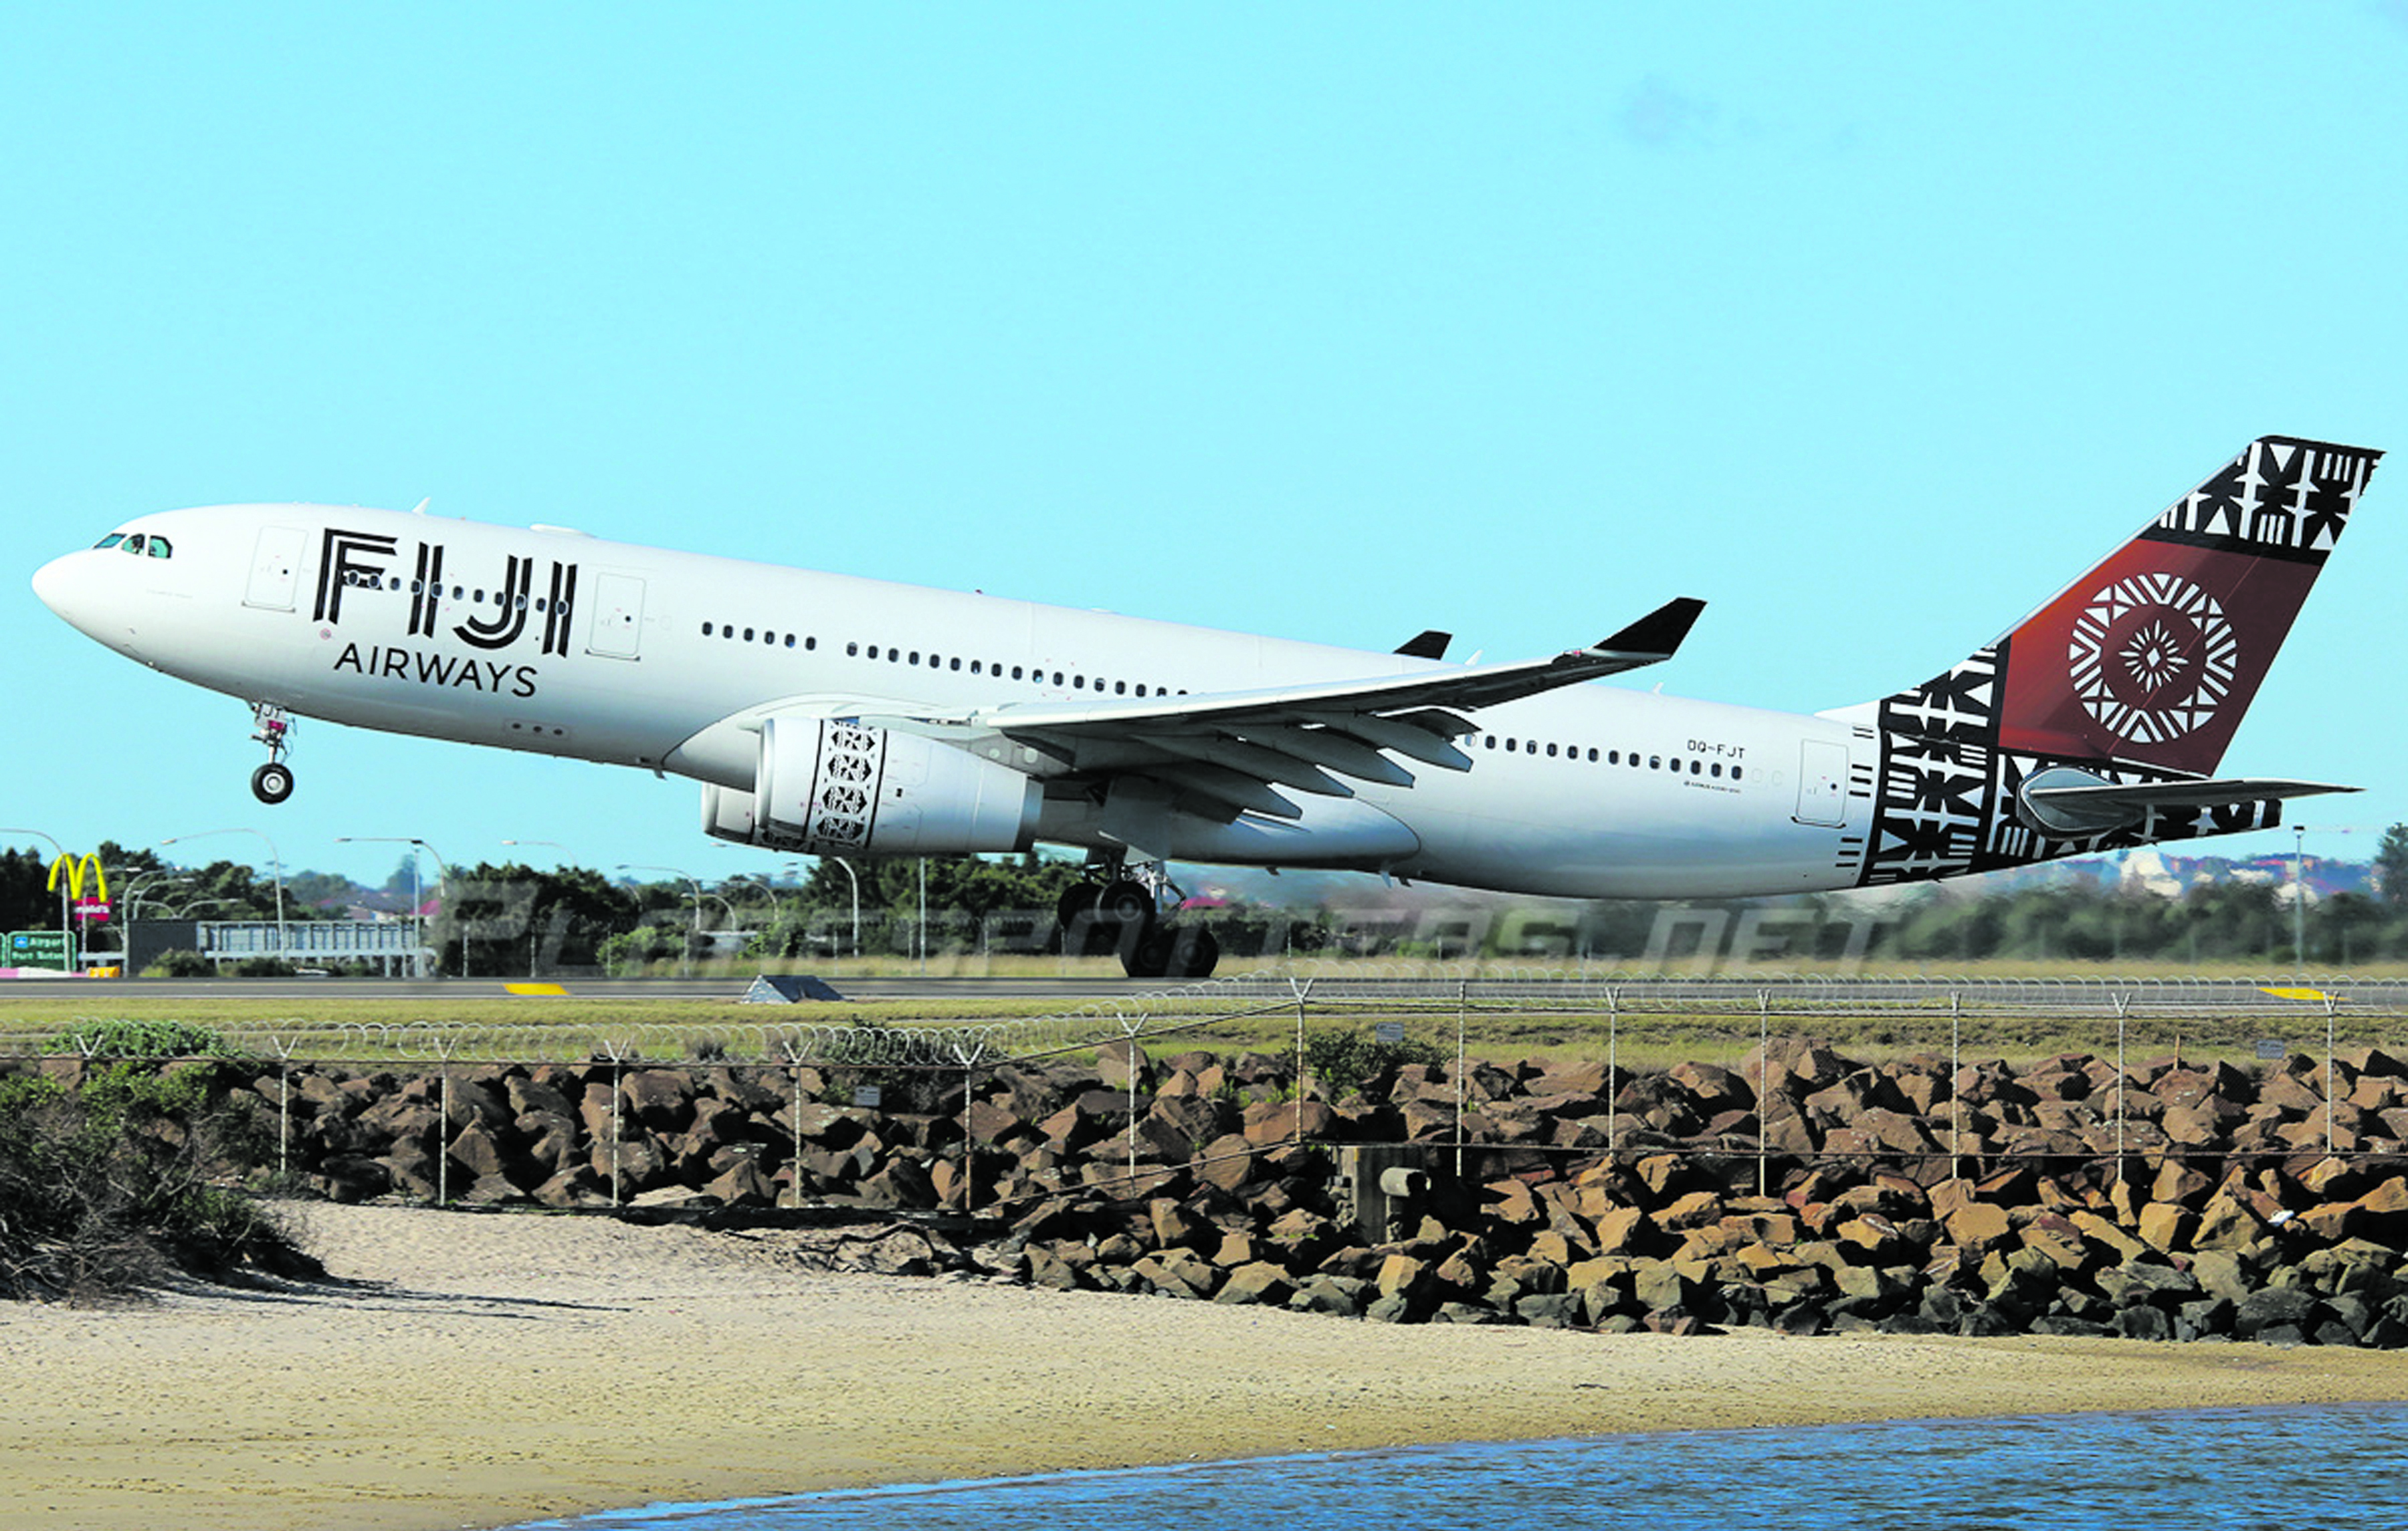 A Fiji Airways Boeing 737 plane.